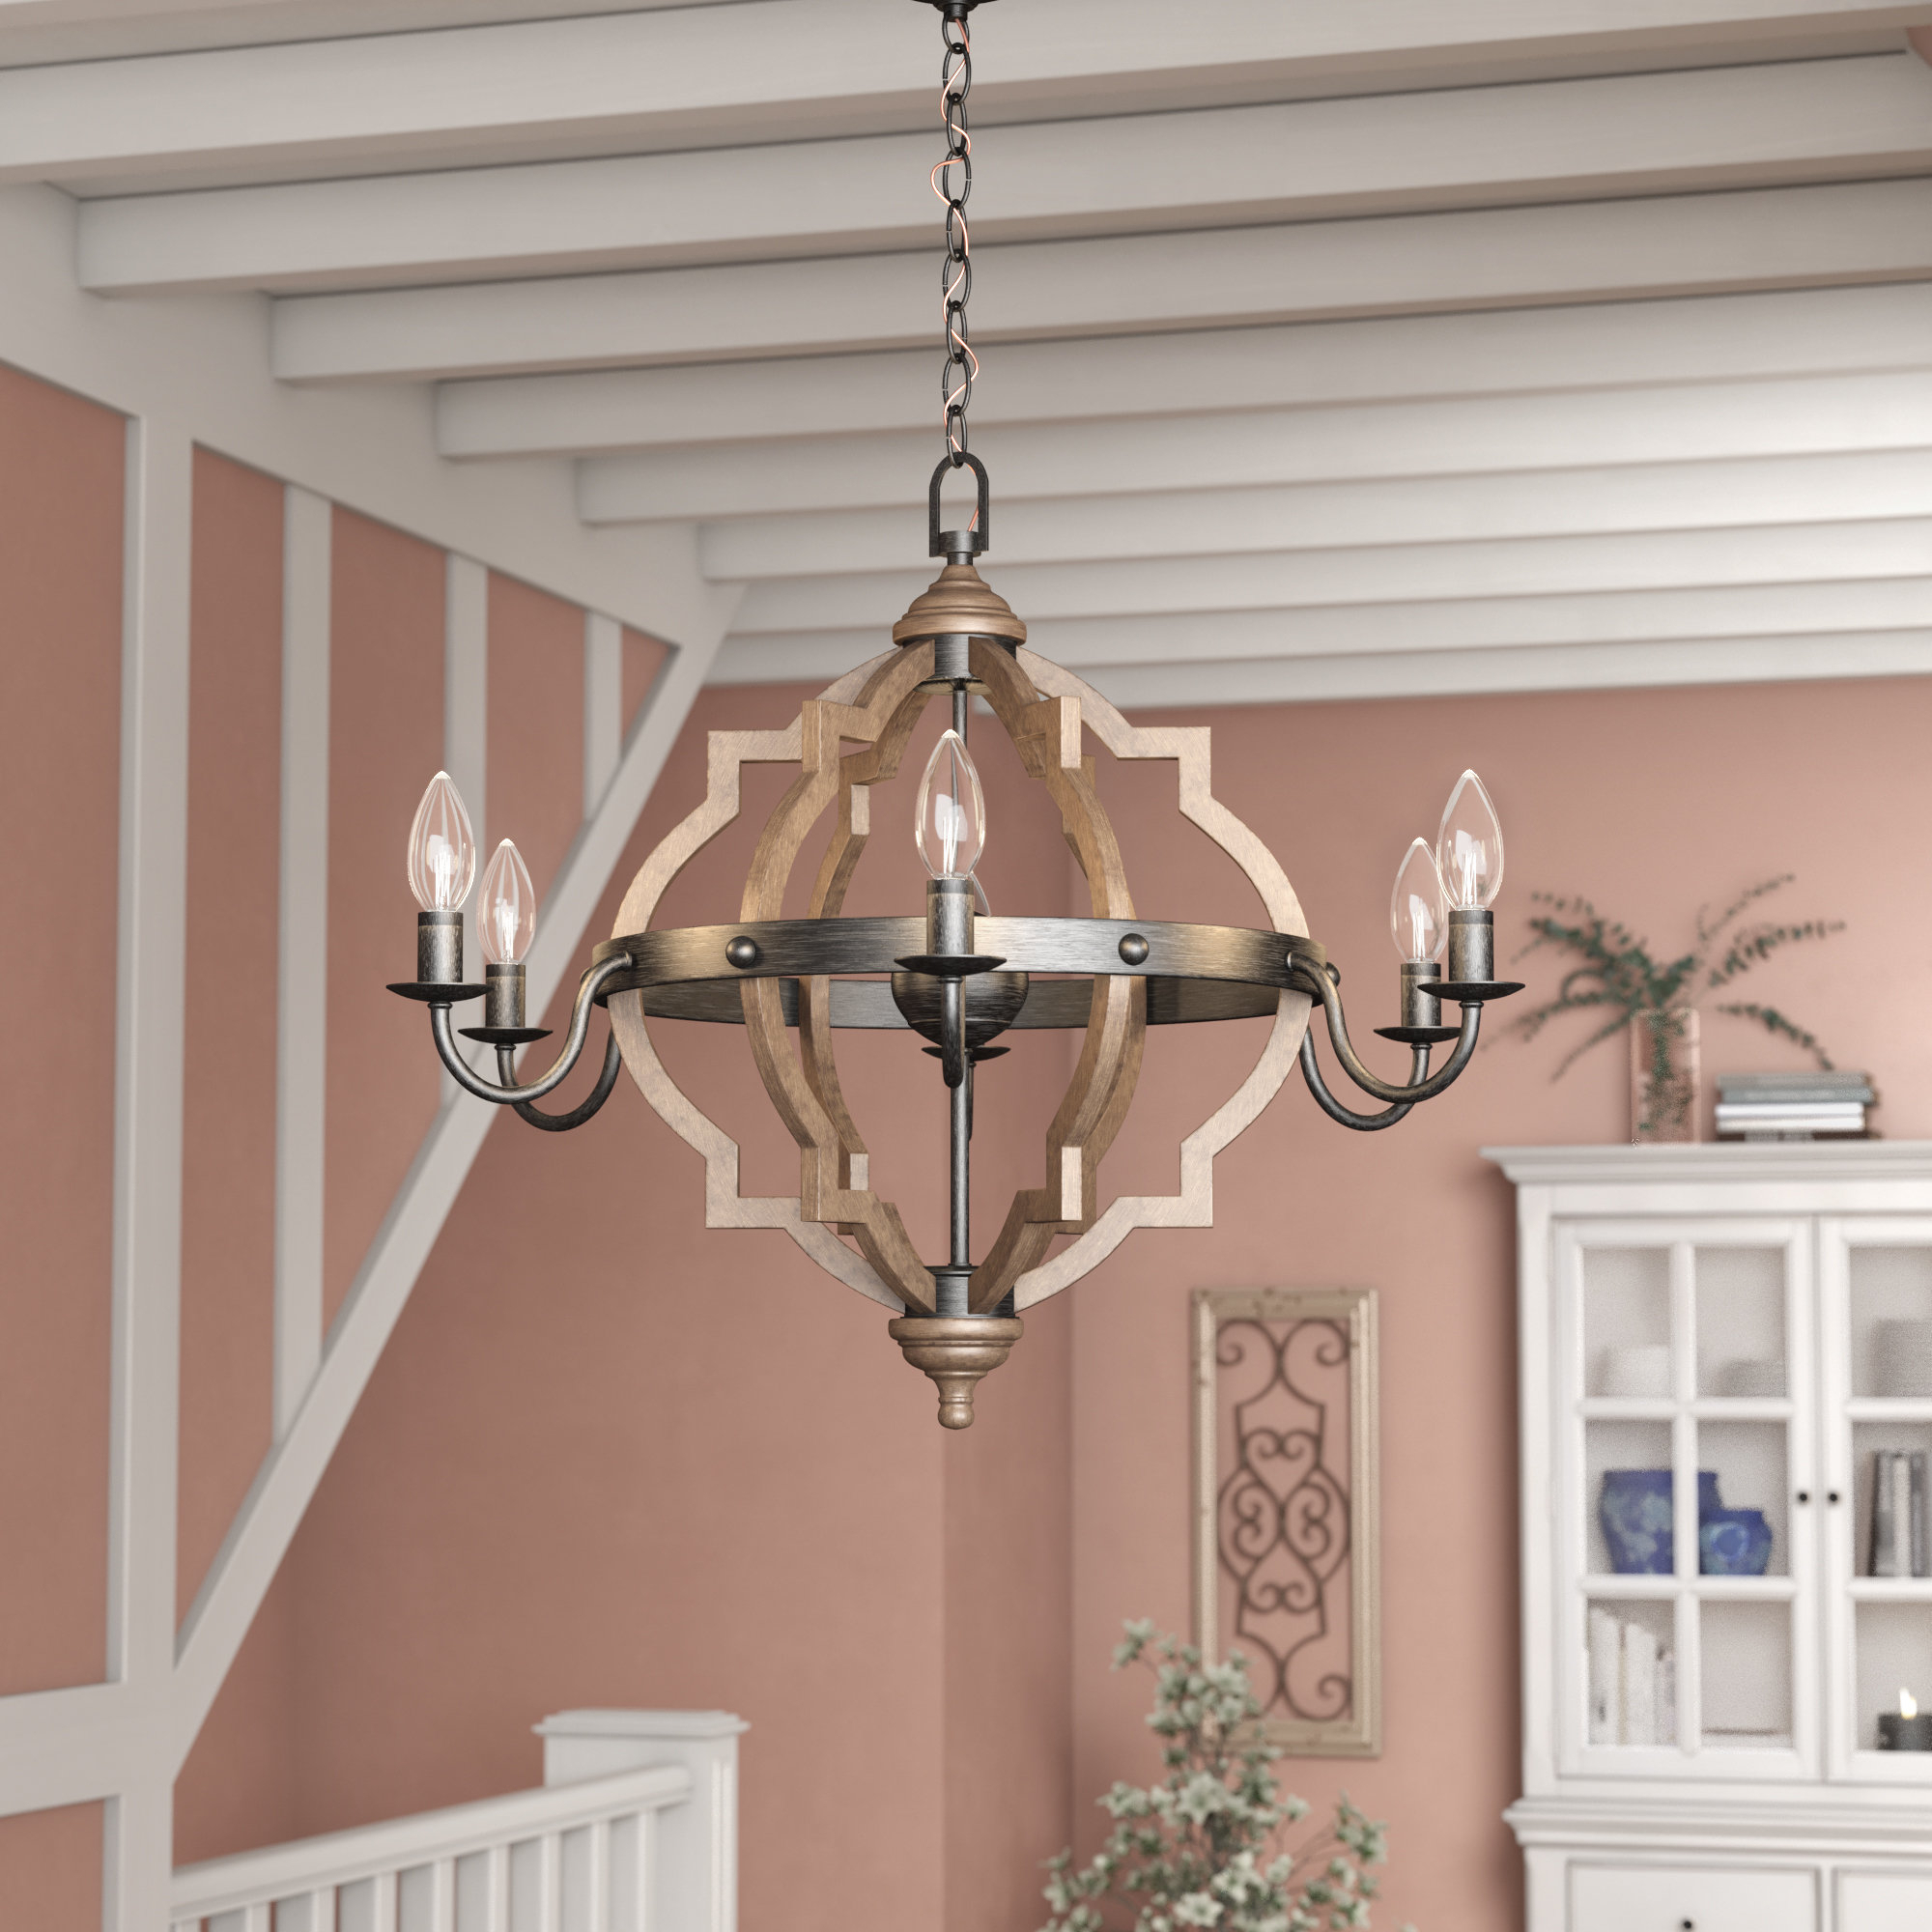 Donna 6 Light Candle Style Chandelier With Regard To Bennington 6 Light Candle Style Chandeliers (View 7 of 30)